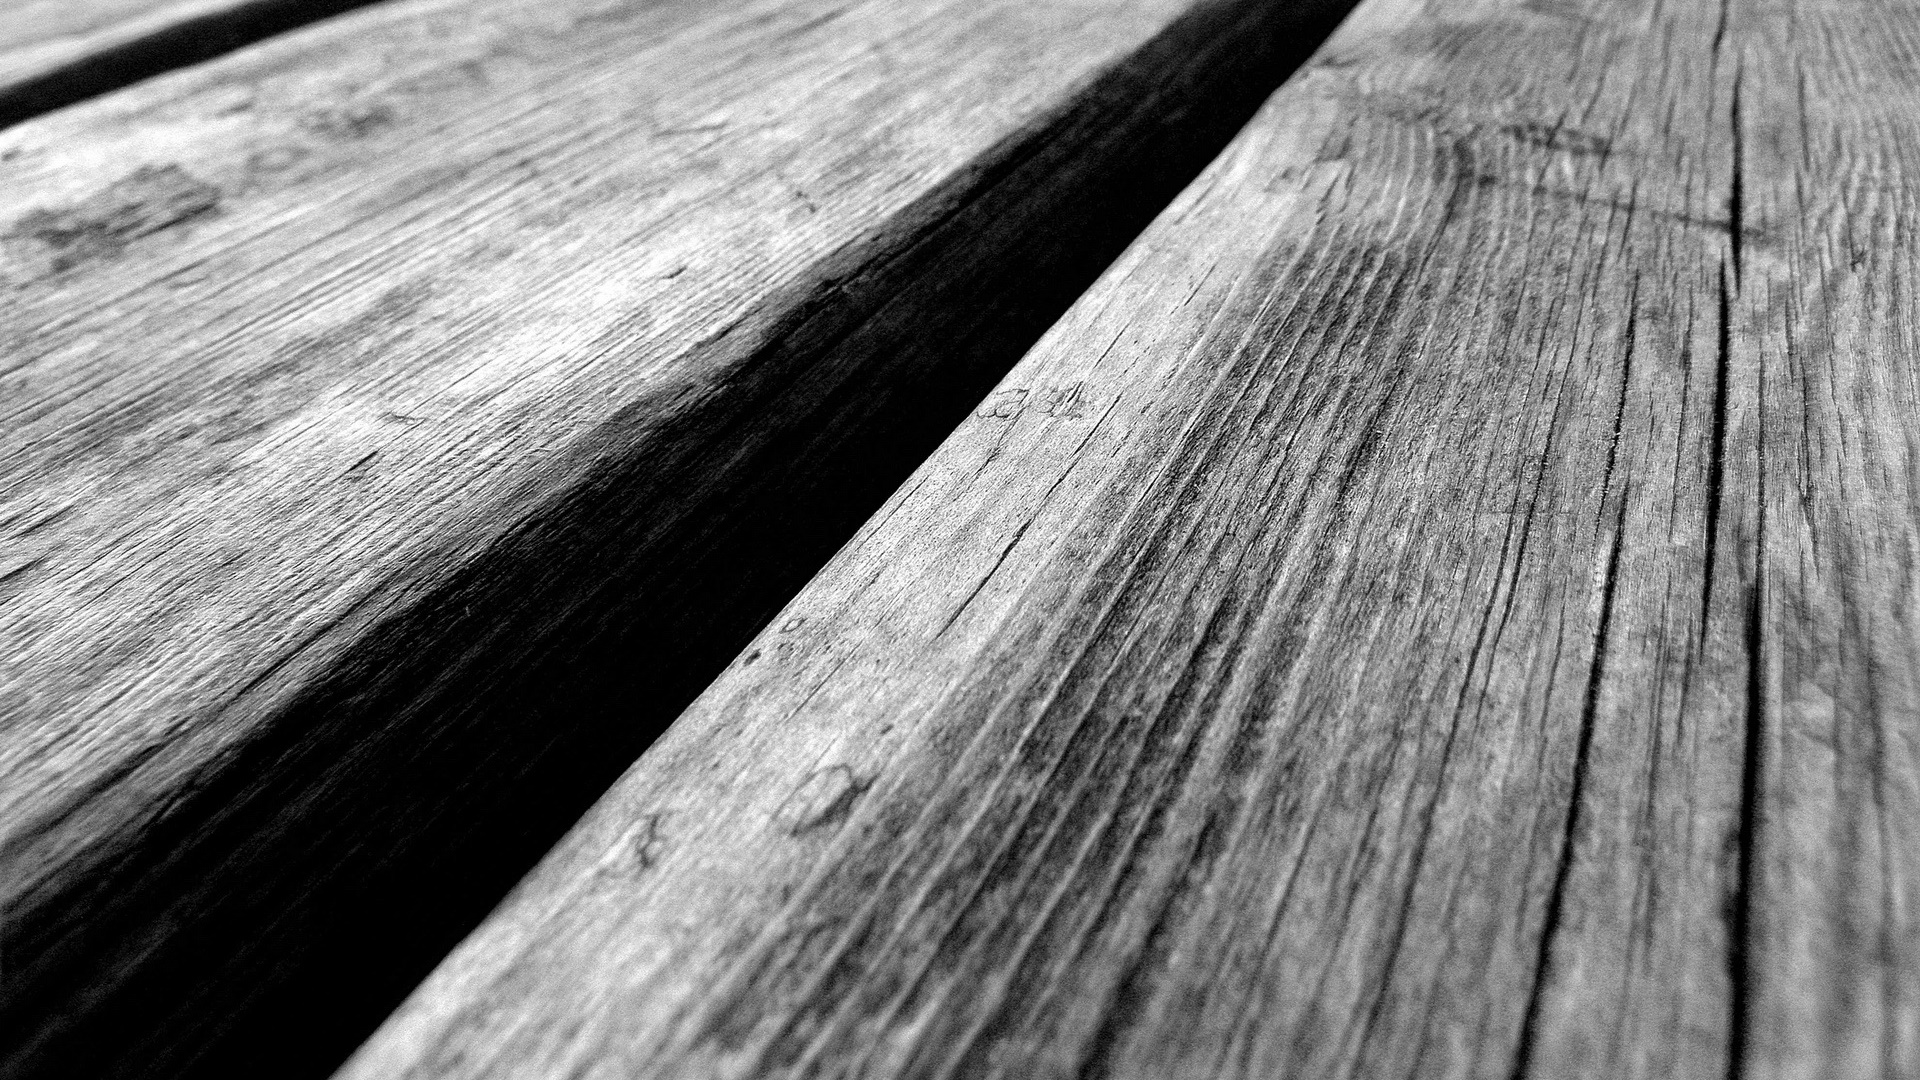 Wood texture close-up 1920x1080 wallpaper